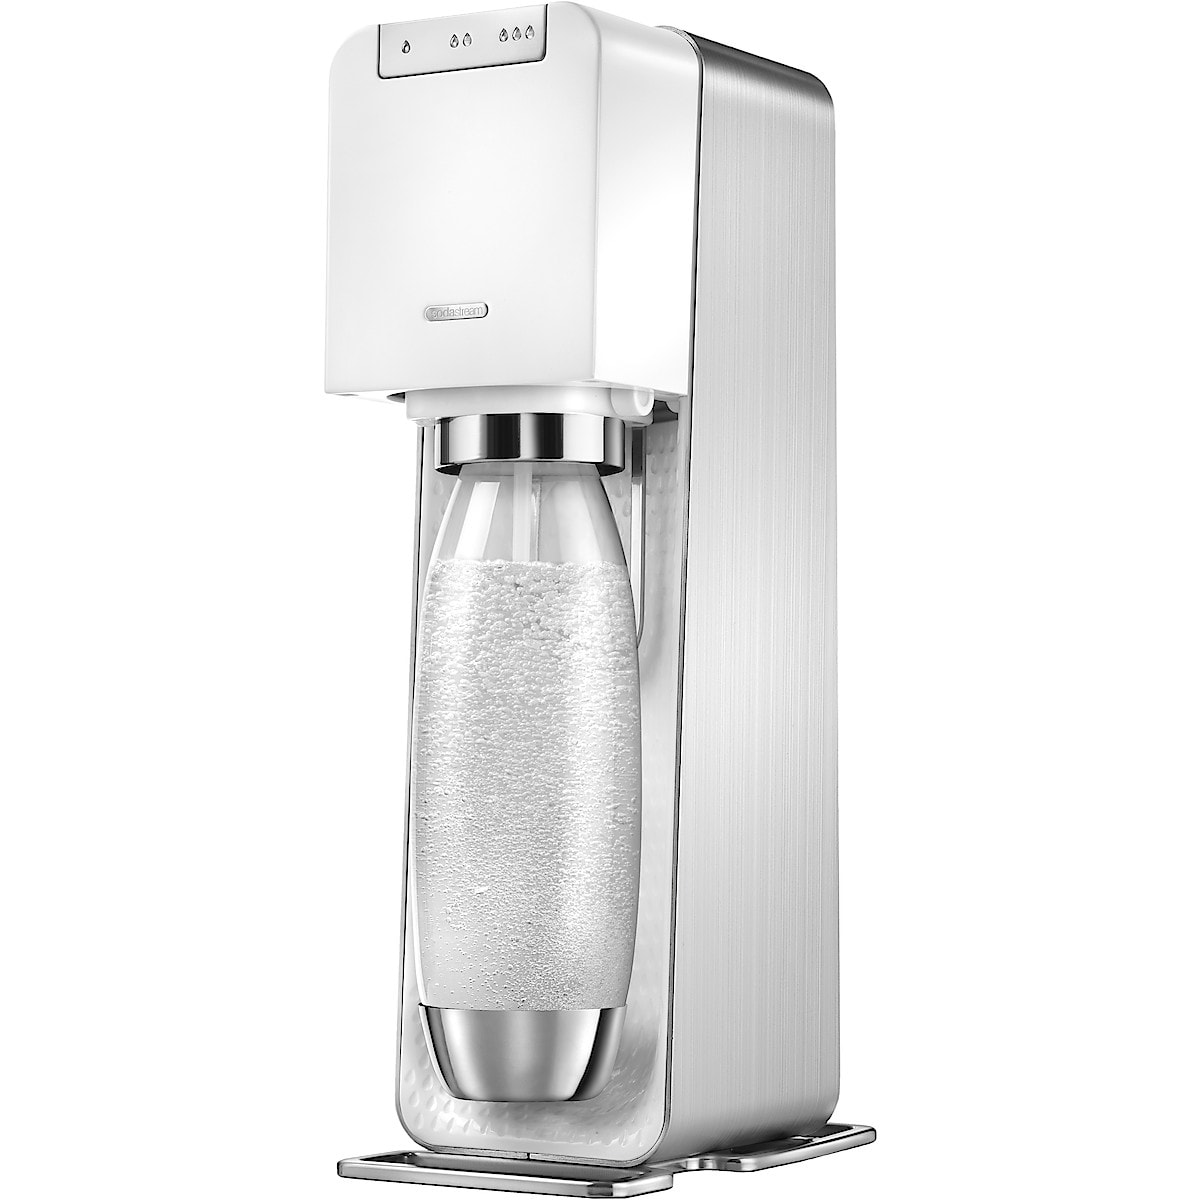 Kolsyremaskin Sodastream Power